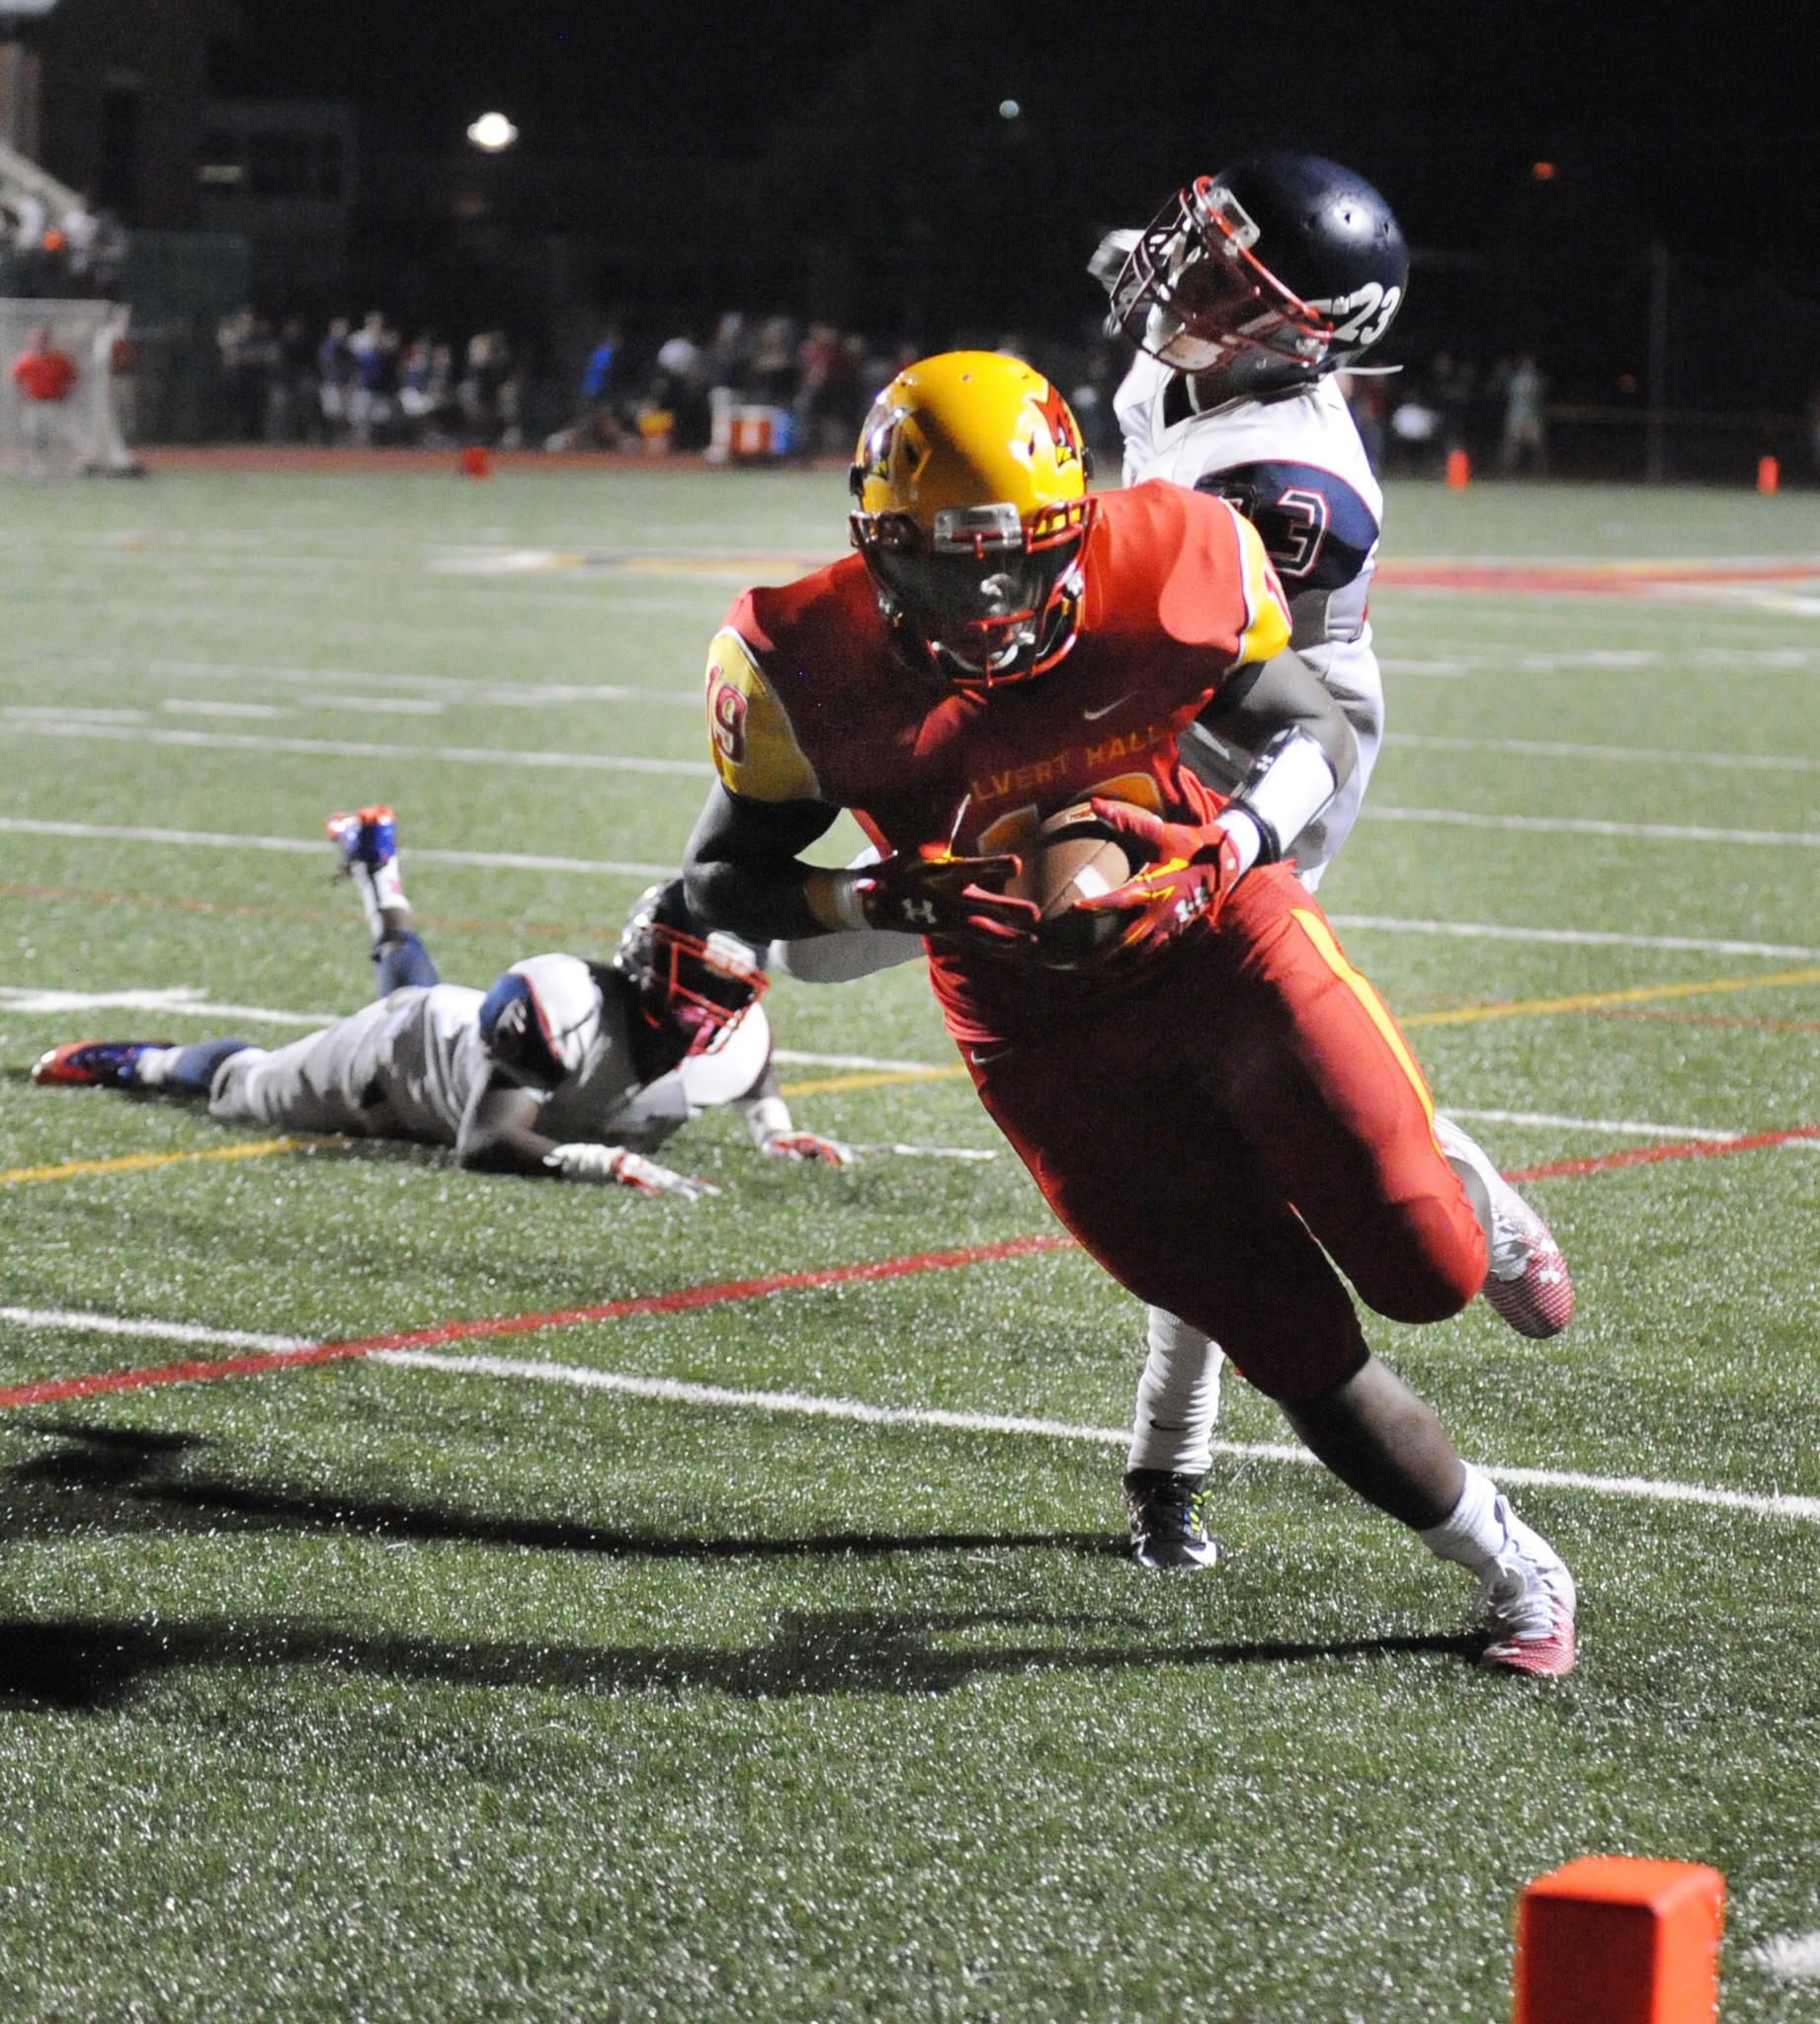 Calvert Hall's Timothy Smith evades Franklin's Jordan Adams to score the go-ahead touchdown in the fourth quarter.